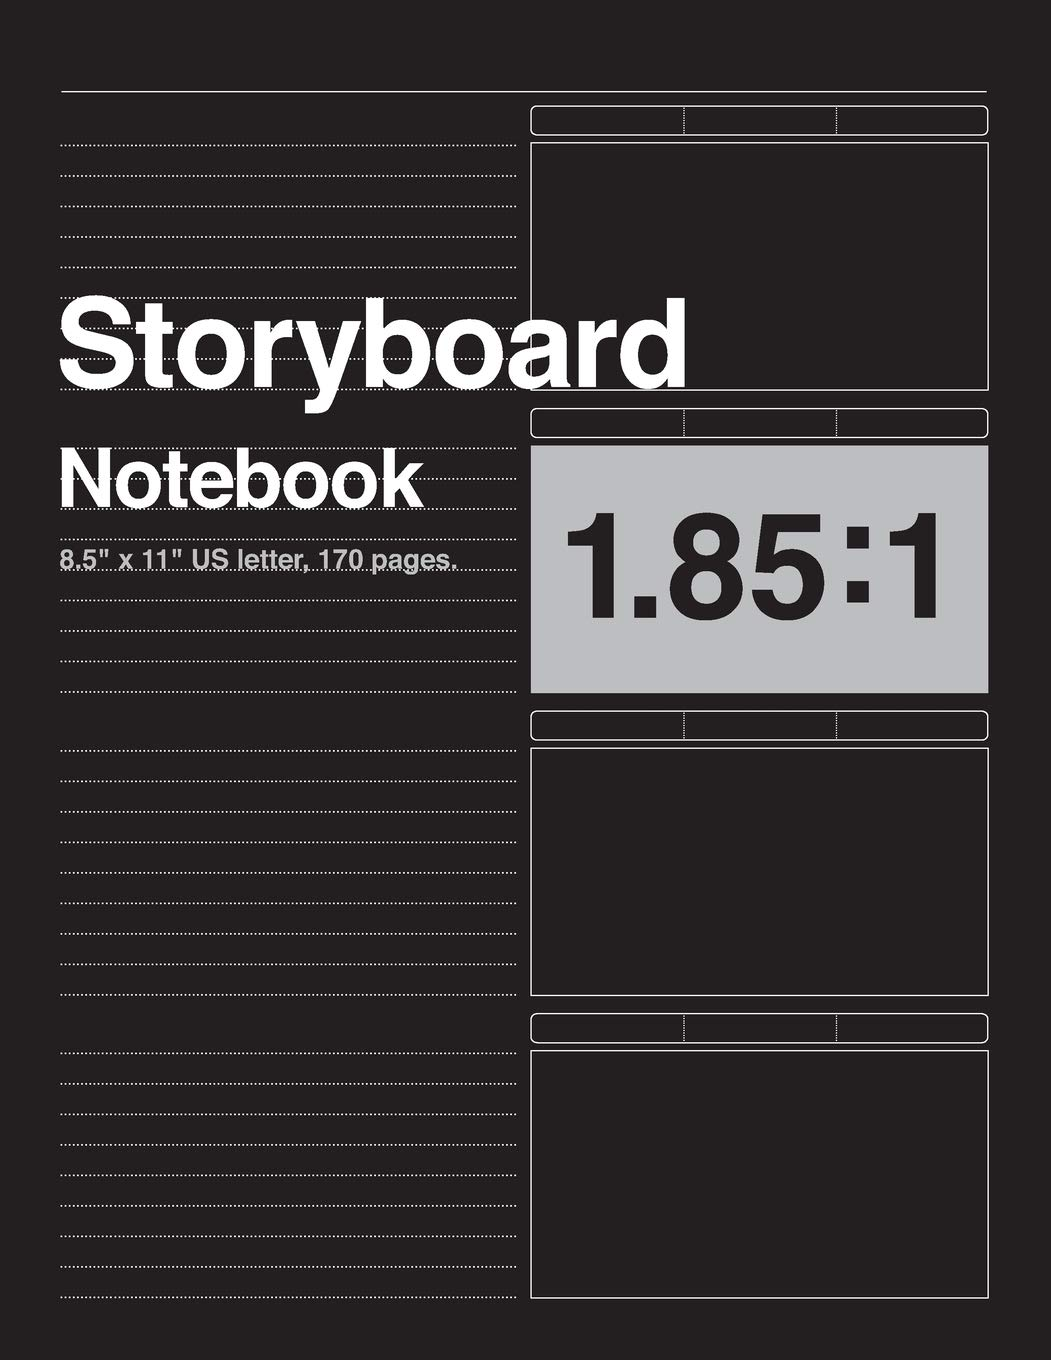 """Storyboard Notebook 1.85:1, 8.5""""x11"""" US Letter, 170 pages: For Directors, Animators & Creative Storytellers."""